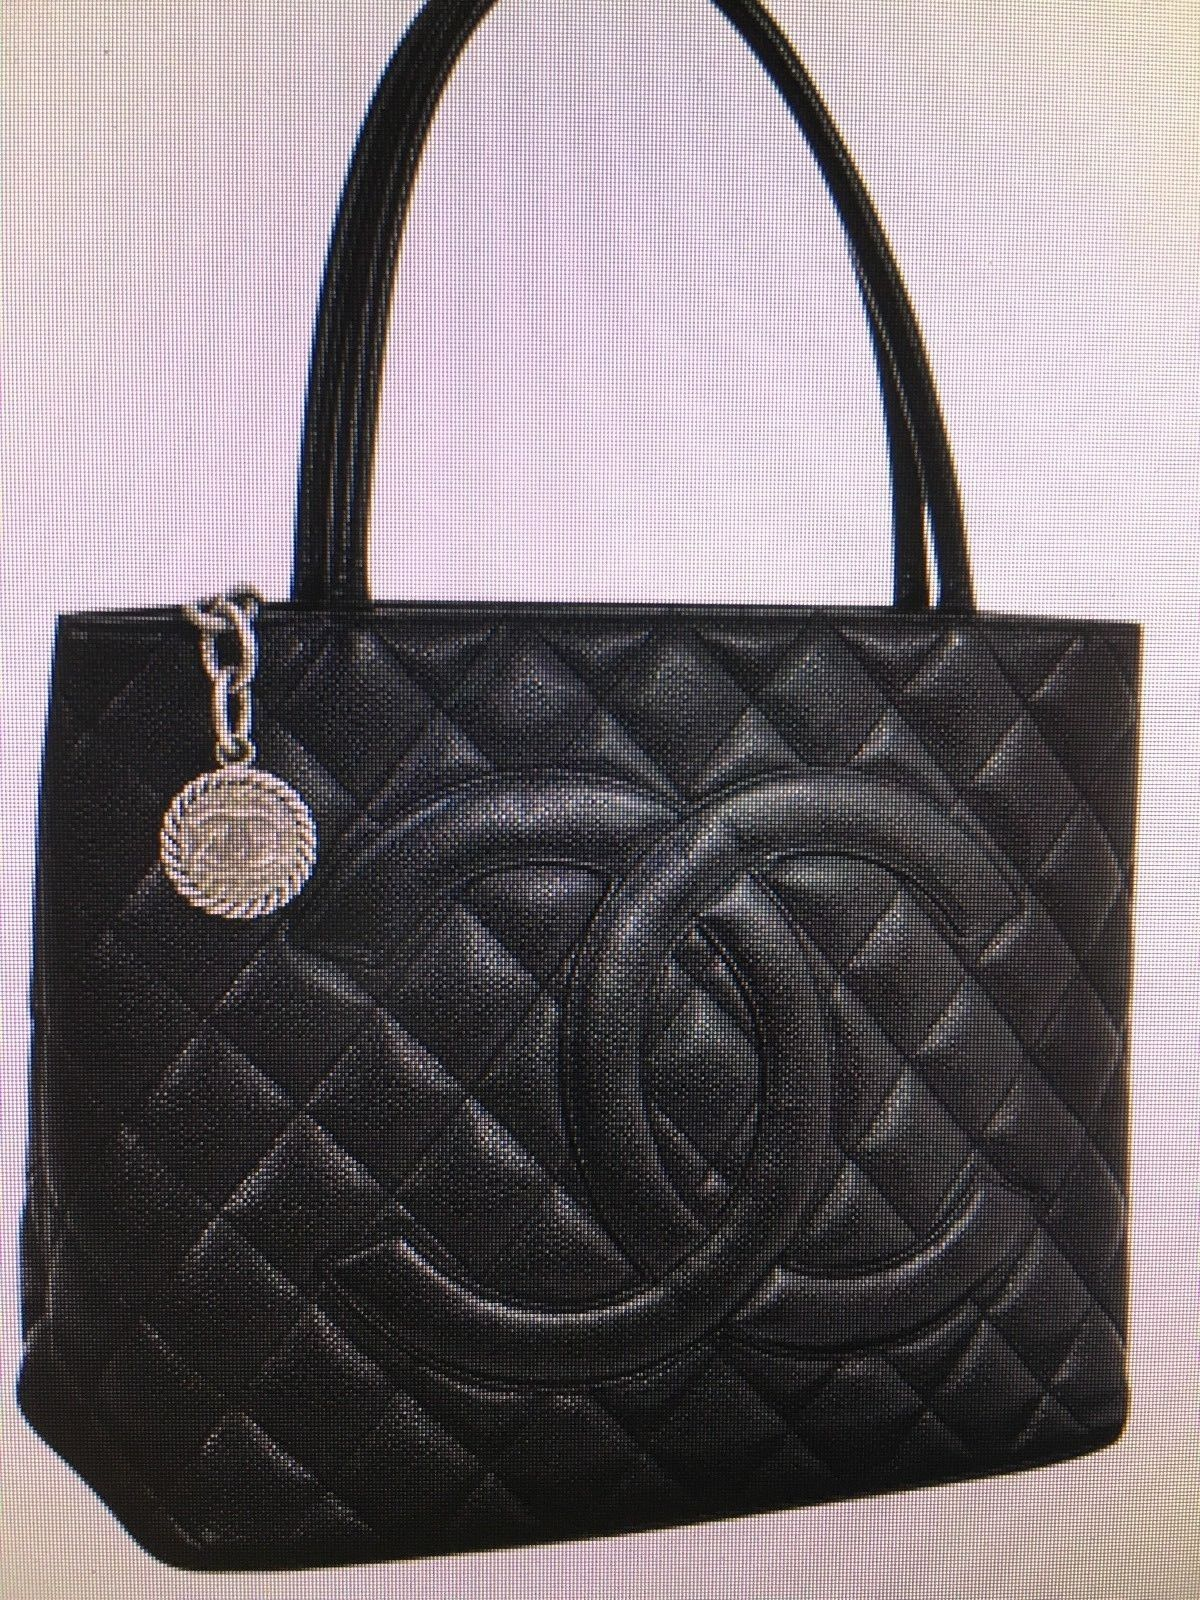 0673b2b505d4f4 Chanel Quilted Caviar Medallion Tote | Women's Handbags and Bags ...